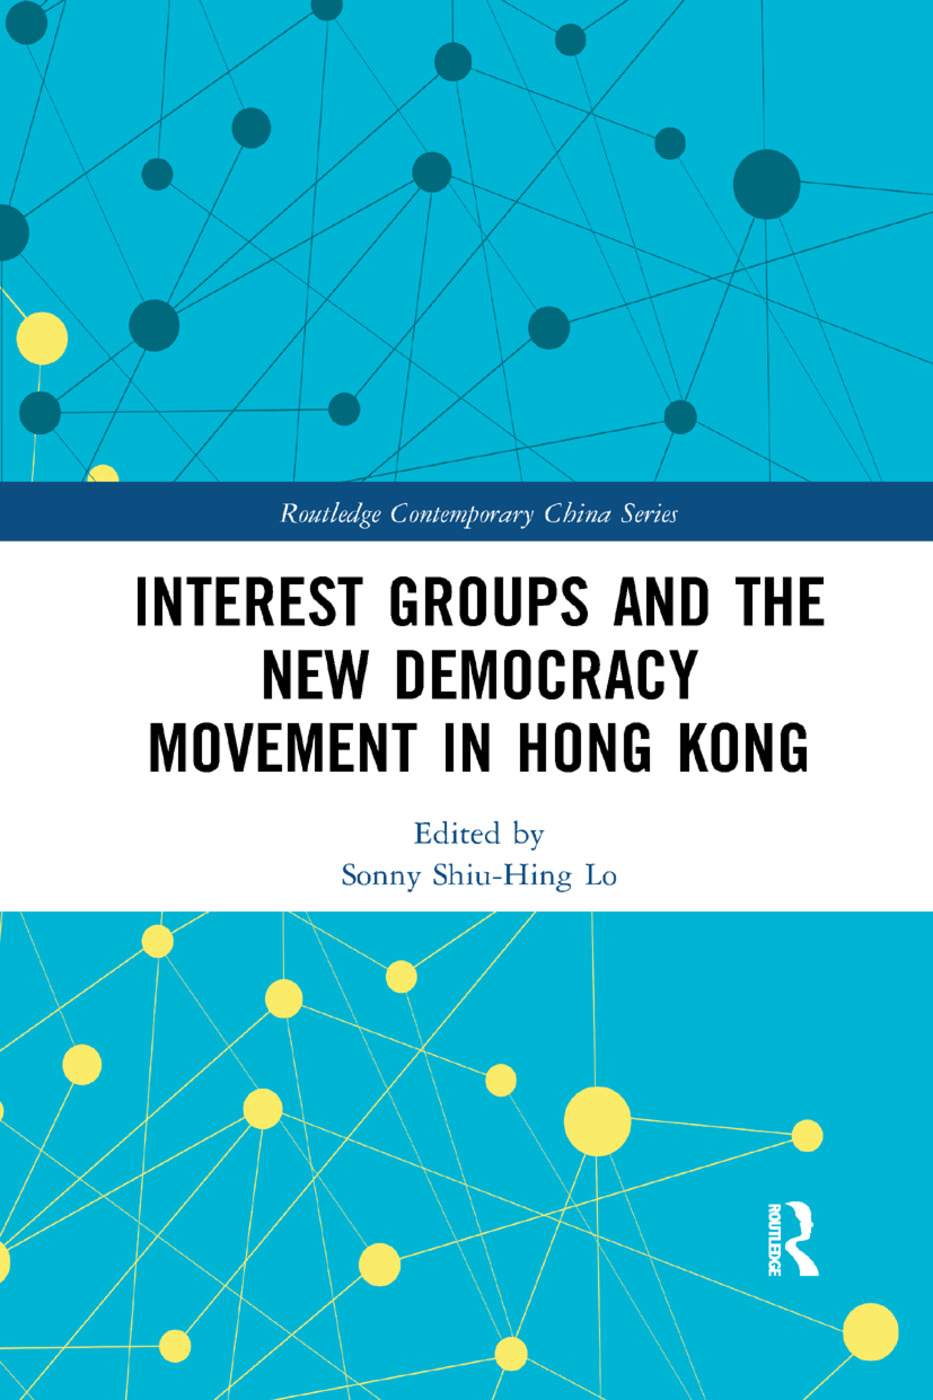 Interest Groups and the New Democracy Movement in Hong Kong